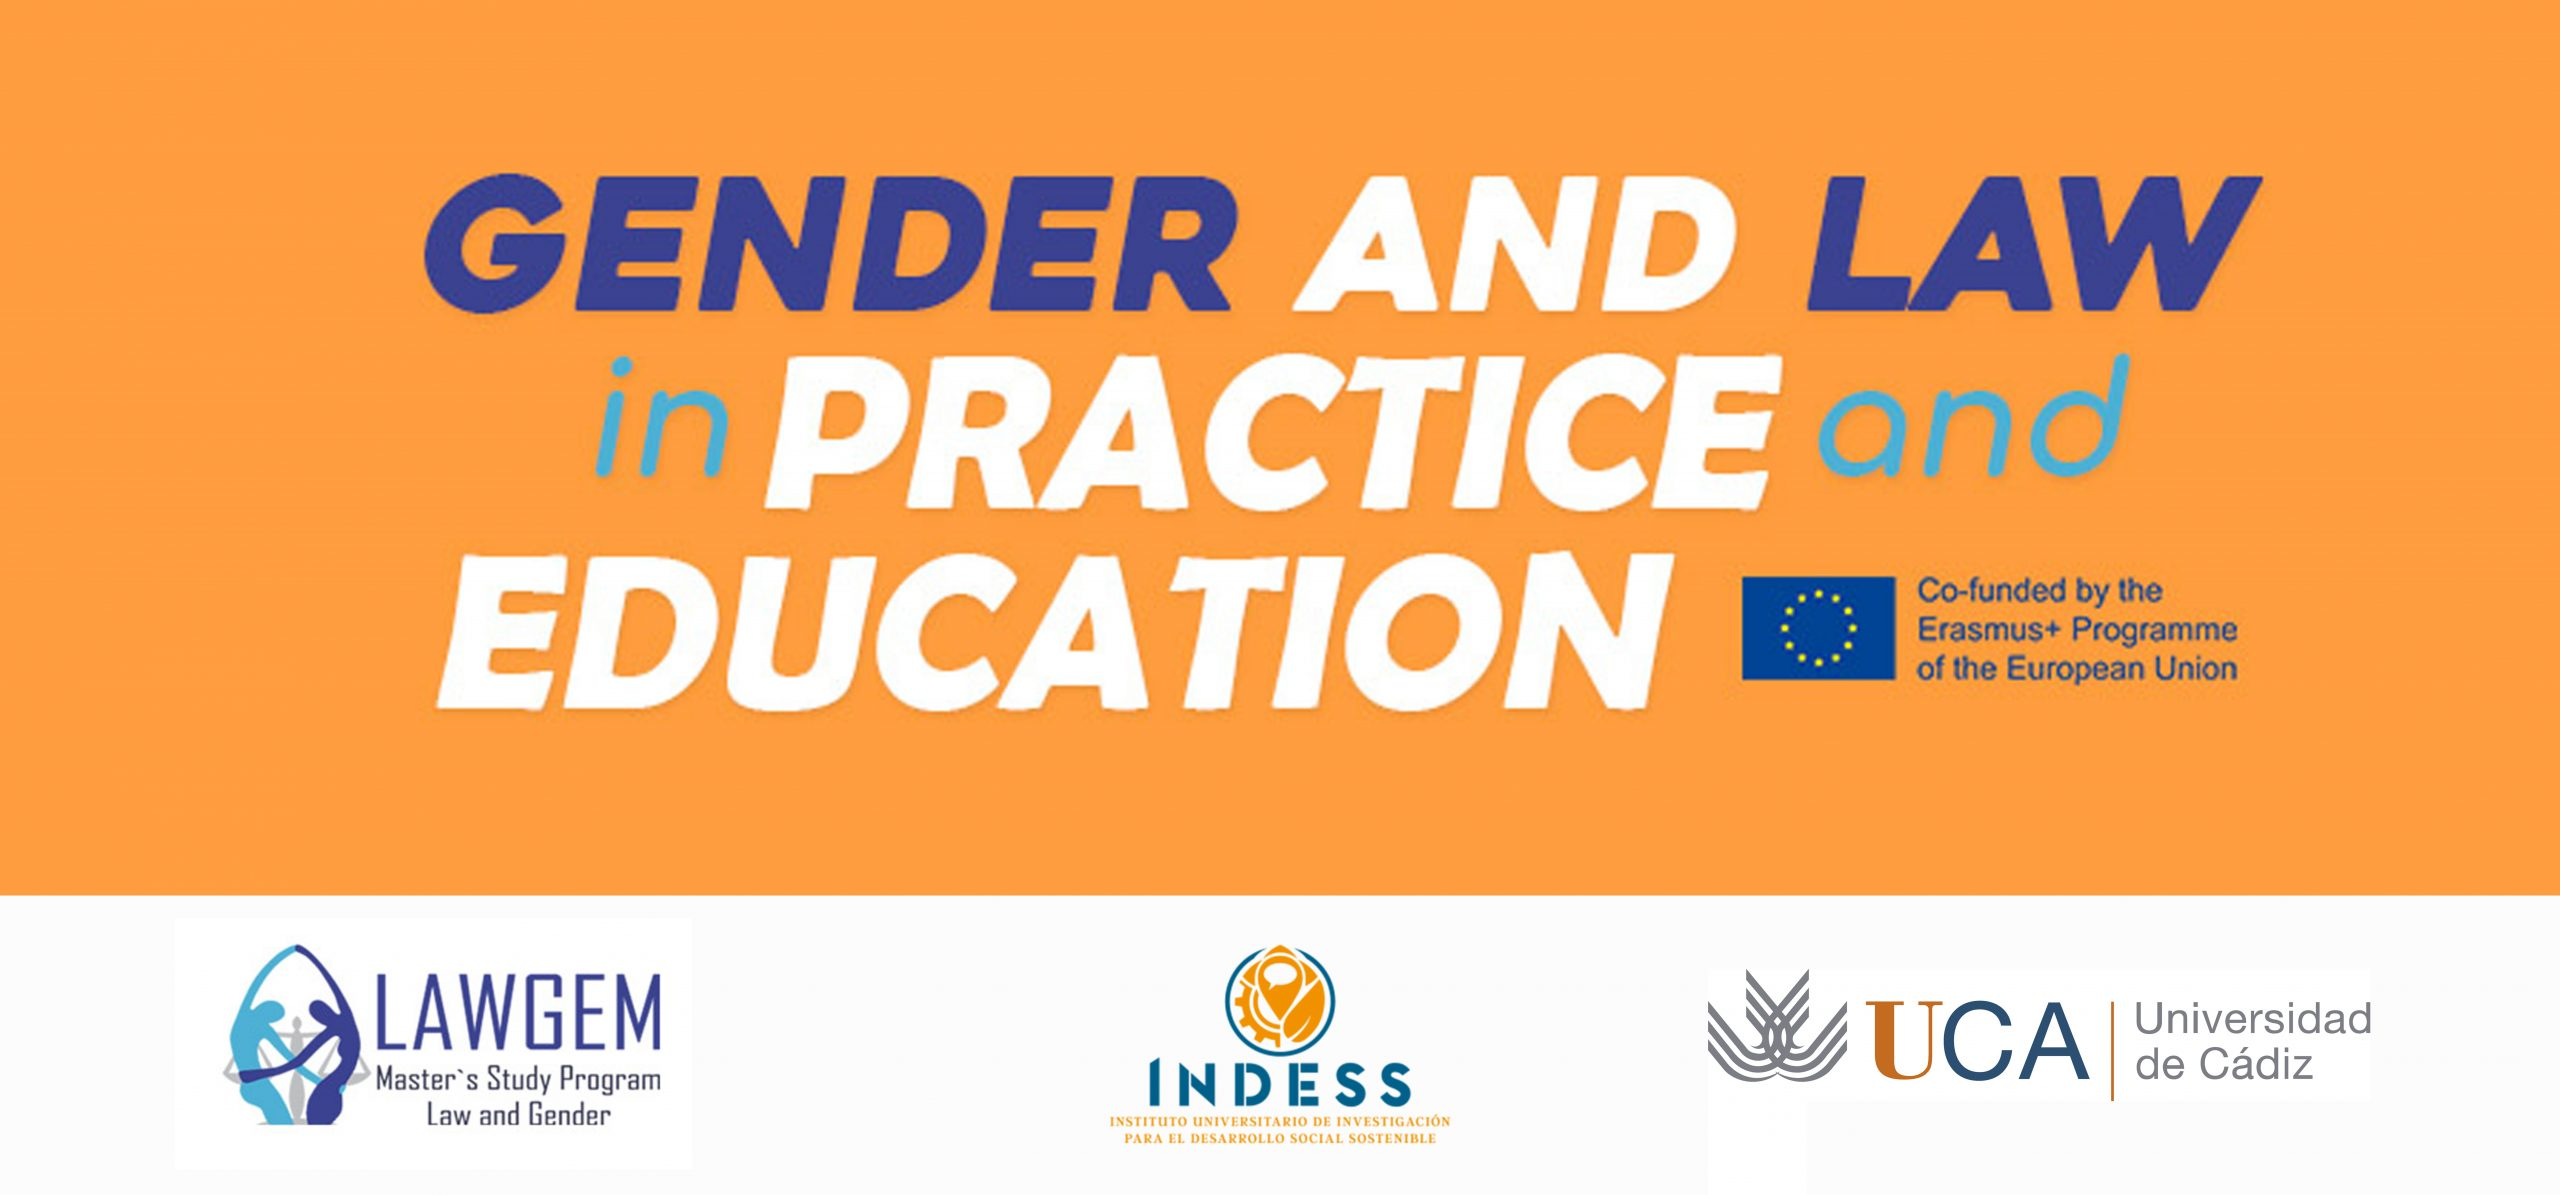 Congreso Internacional Gender and Law In Practice and Education